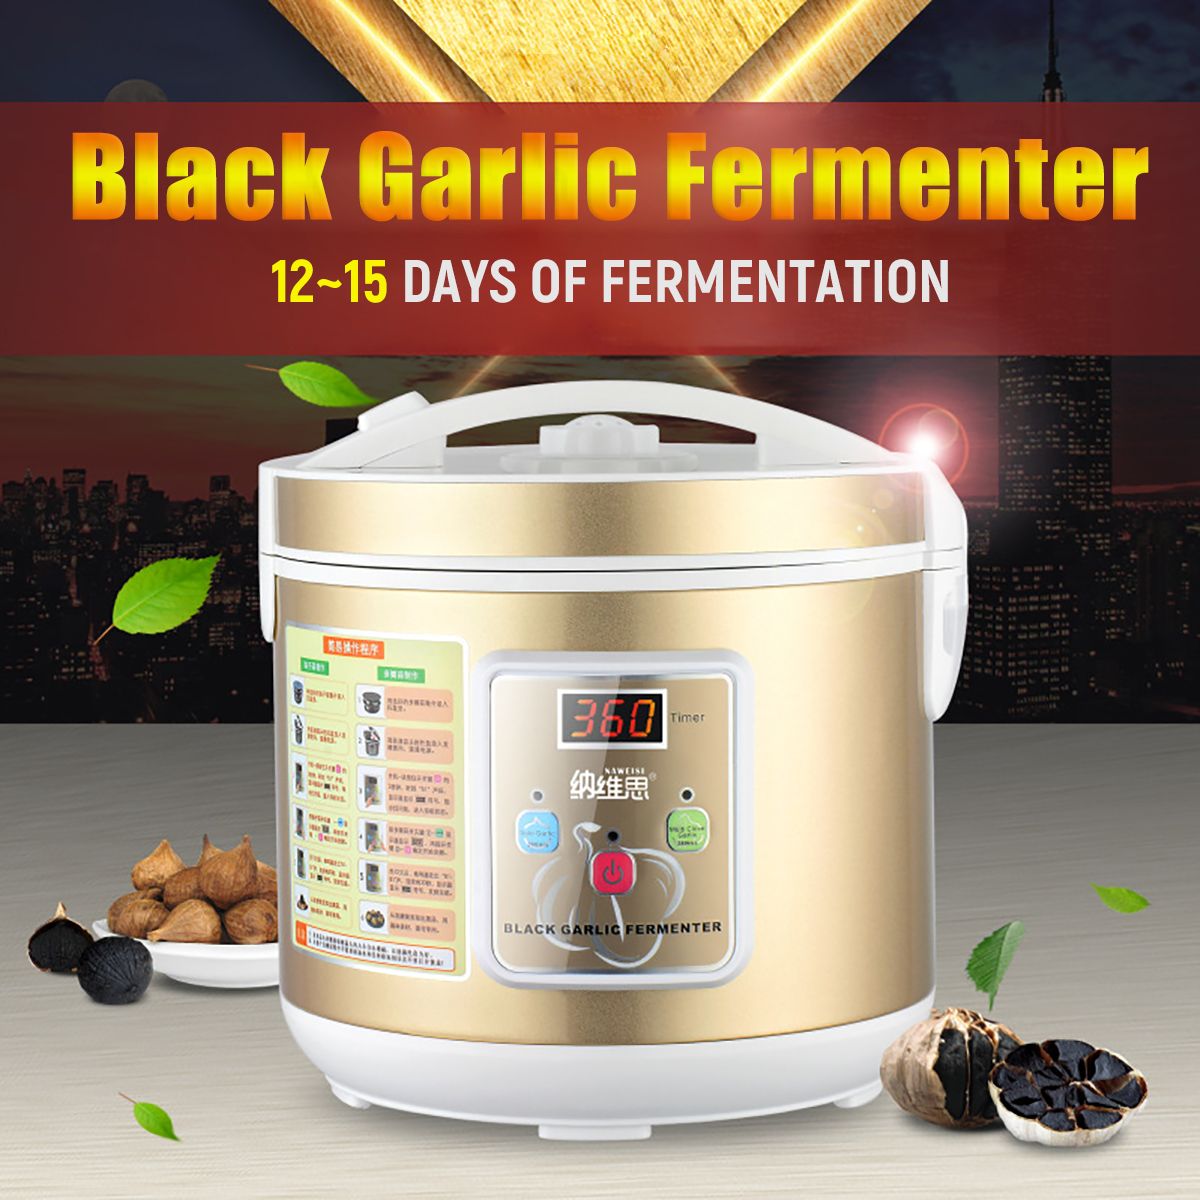 110V 90W Intelligent Black Garlic Fermenter Automatic Fermentation Machine 5L 12-15 Days by